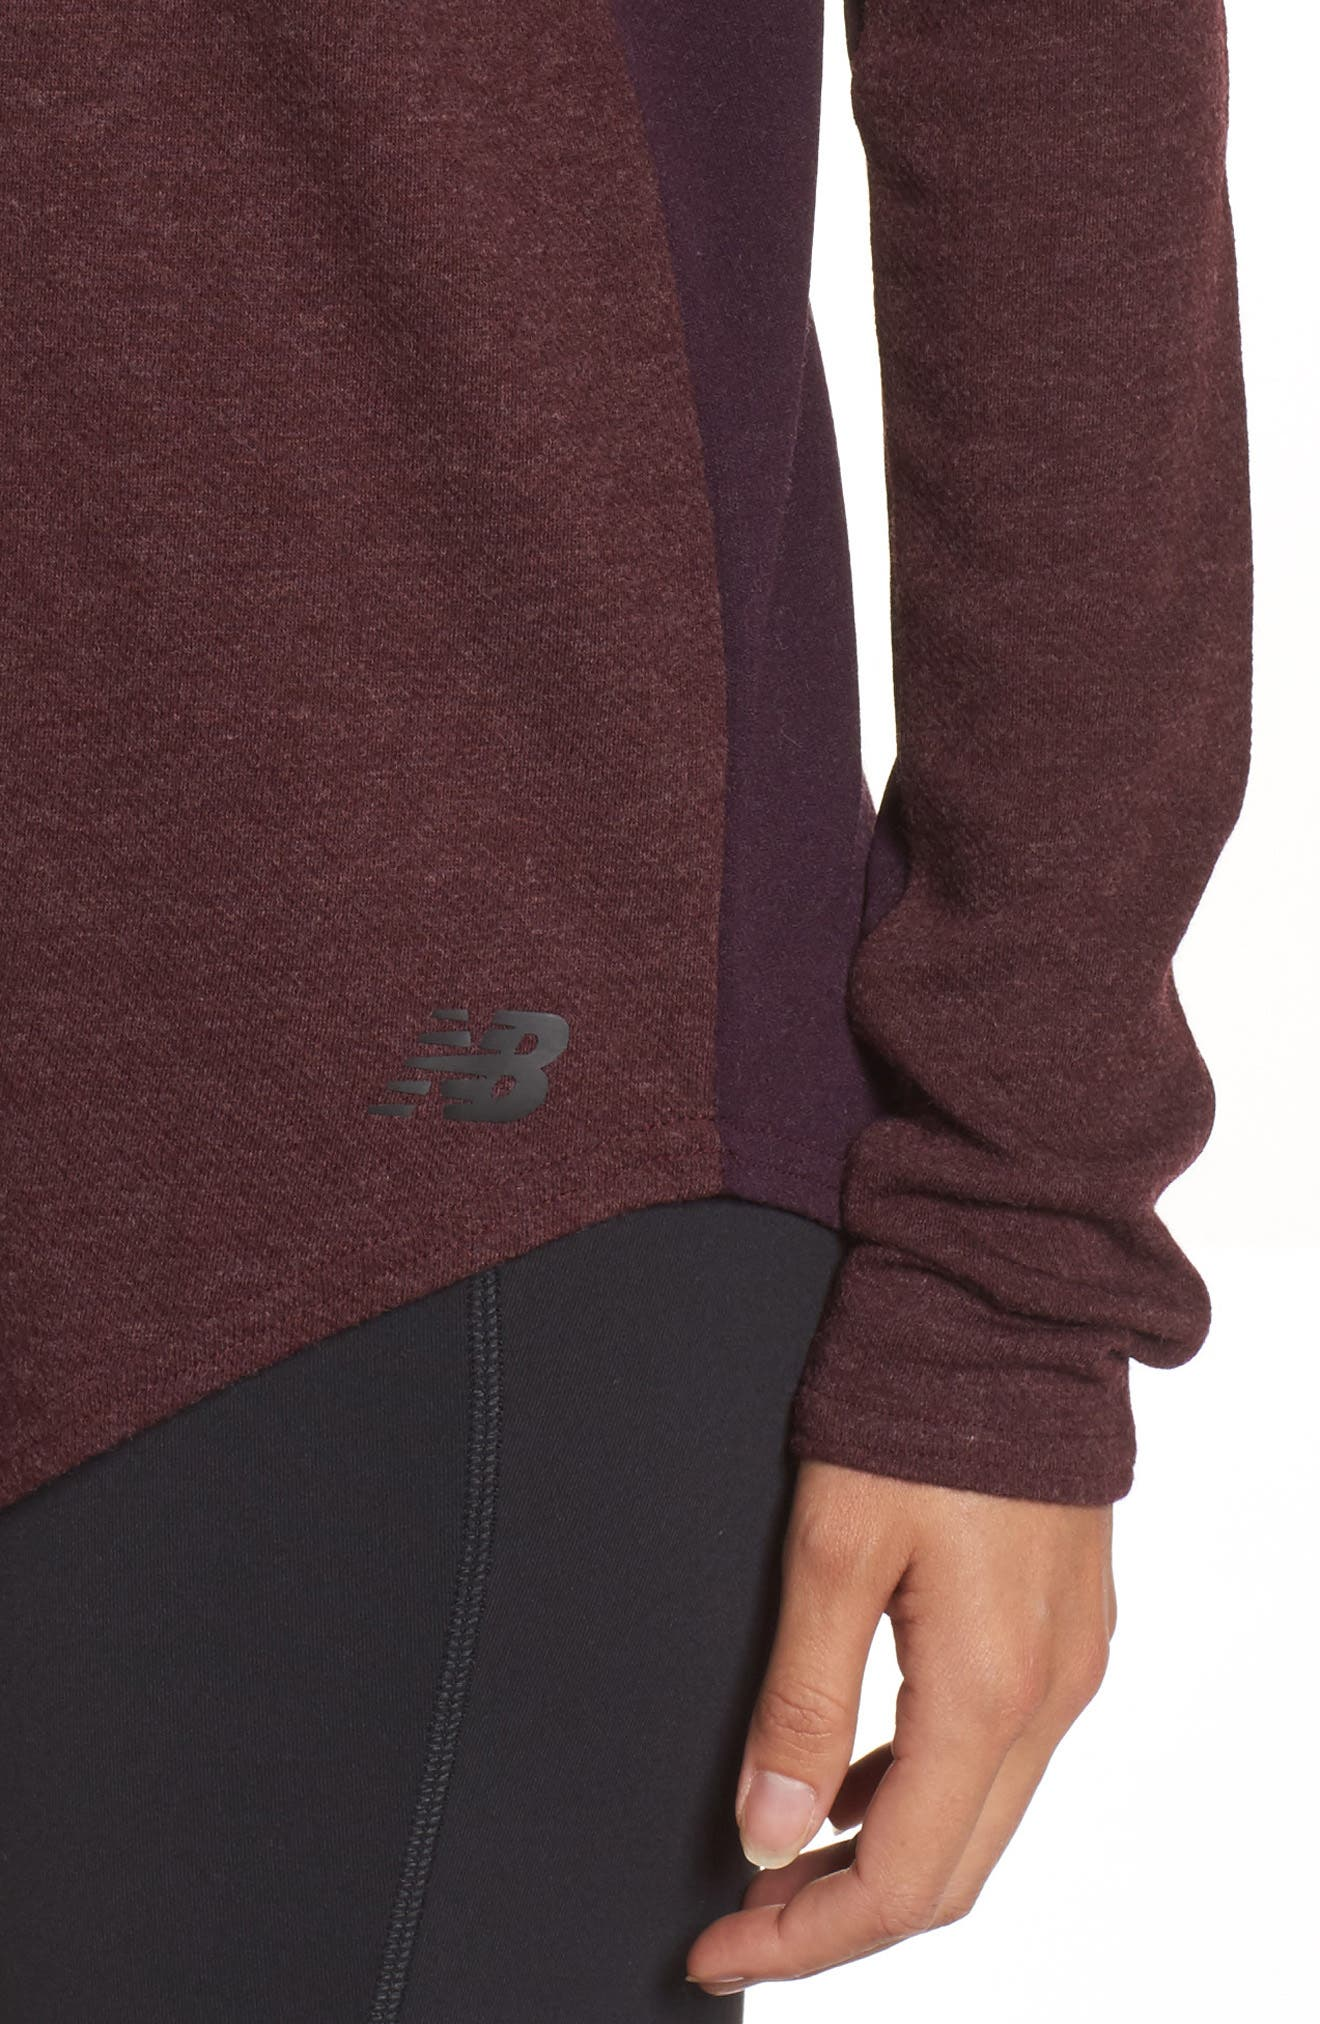 247 Luxe Long Sleeve Tee,                             Alternate thumbnail 4, color,                             930